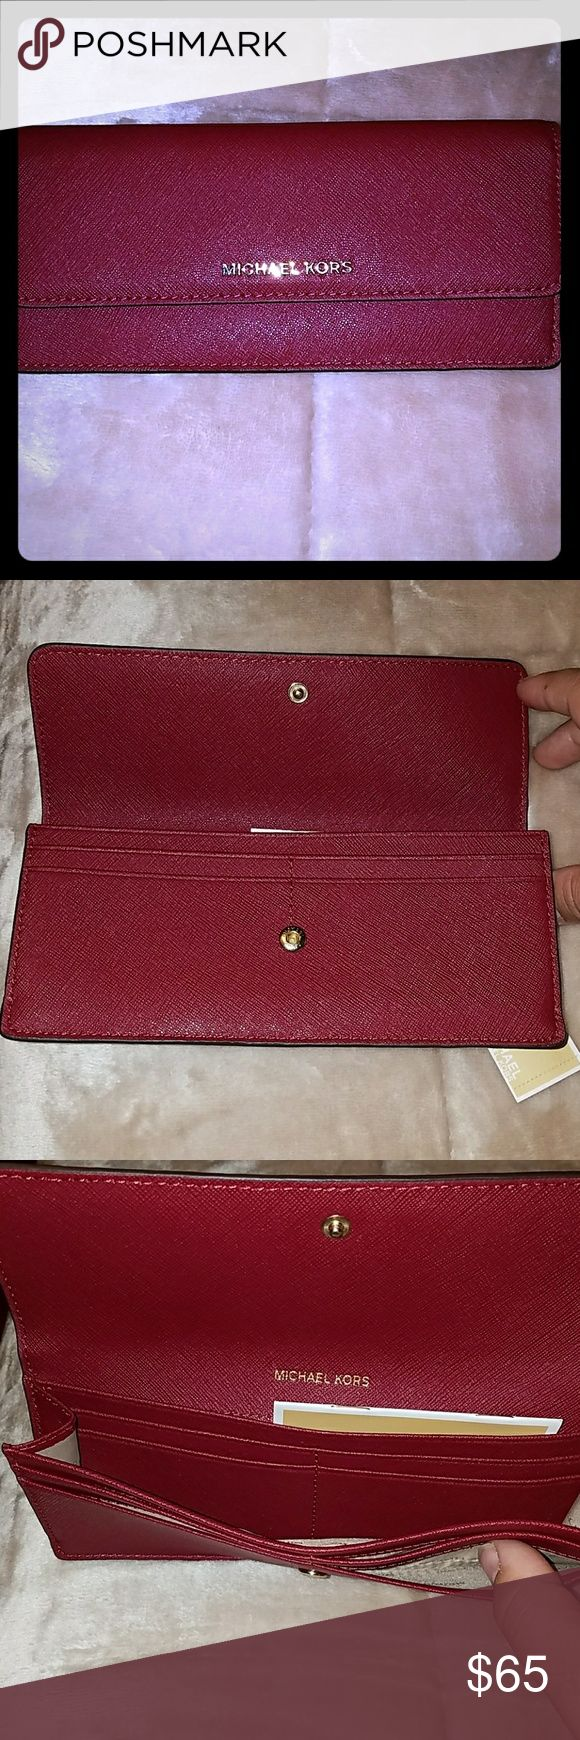 Michael Kors wallet Money pieces. Flat wallet leather. Color is mulberry. Wallet has 8 card slots and a zip up pocket for change. Hardware is gold. Michael Kors Bags Wallets